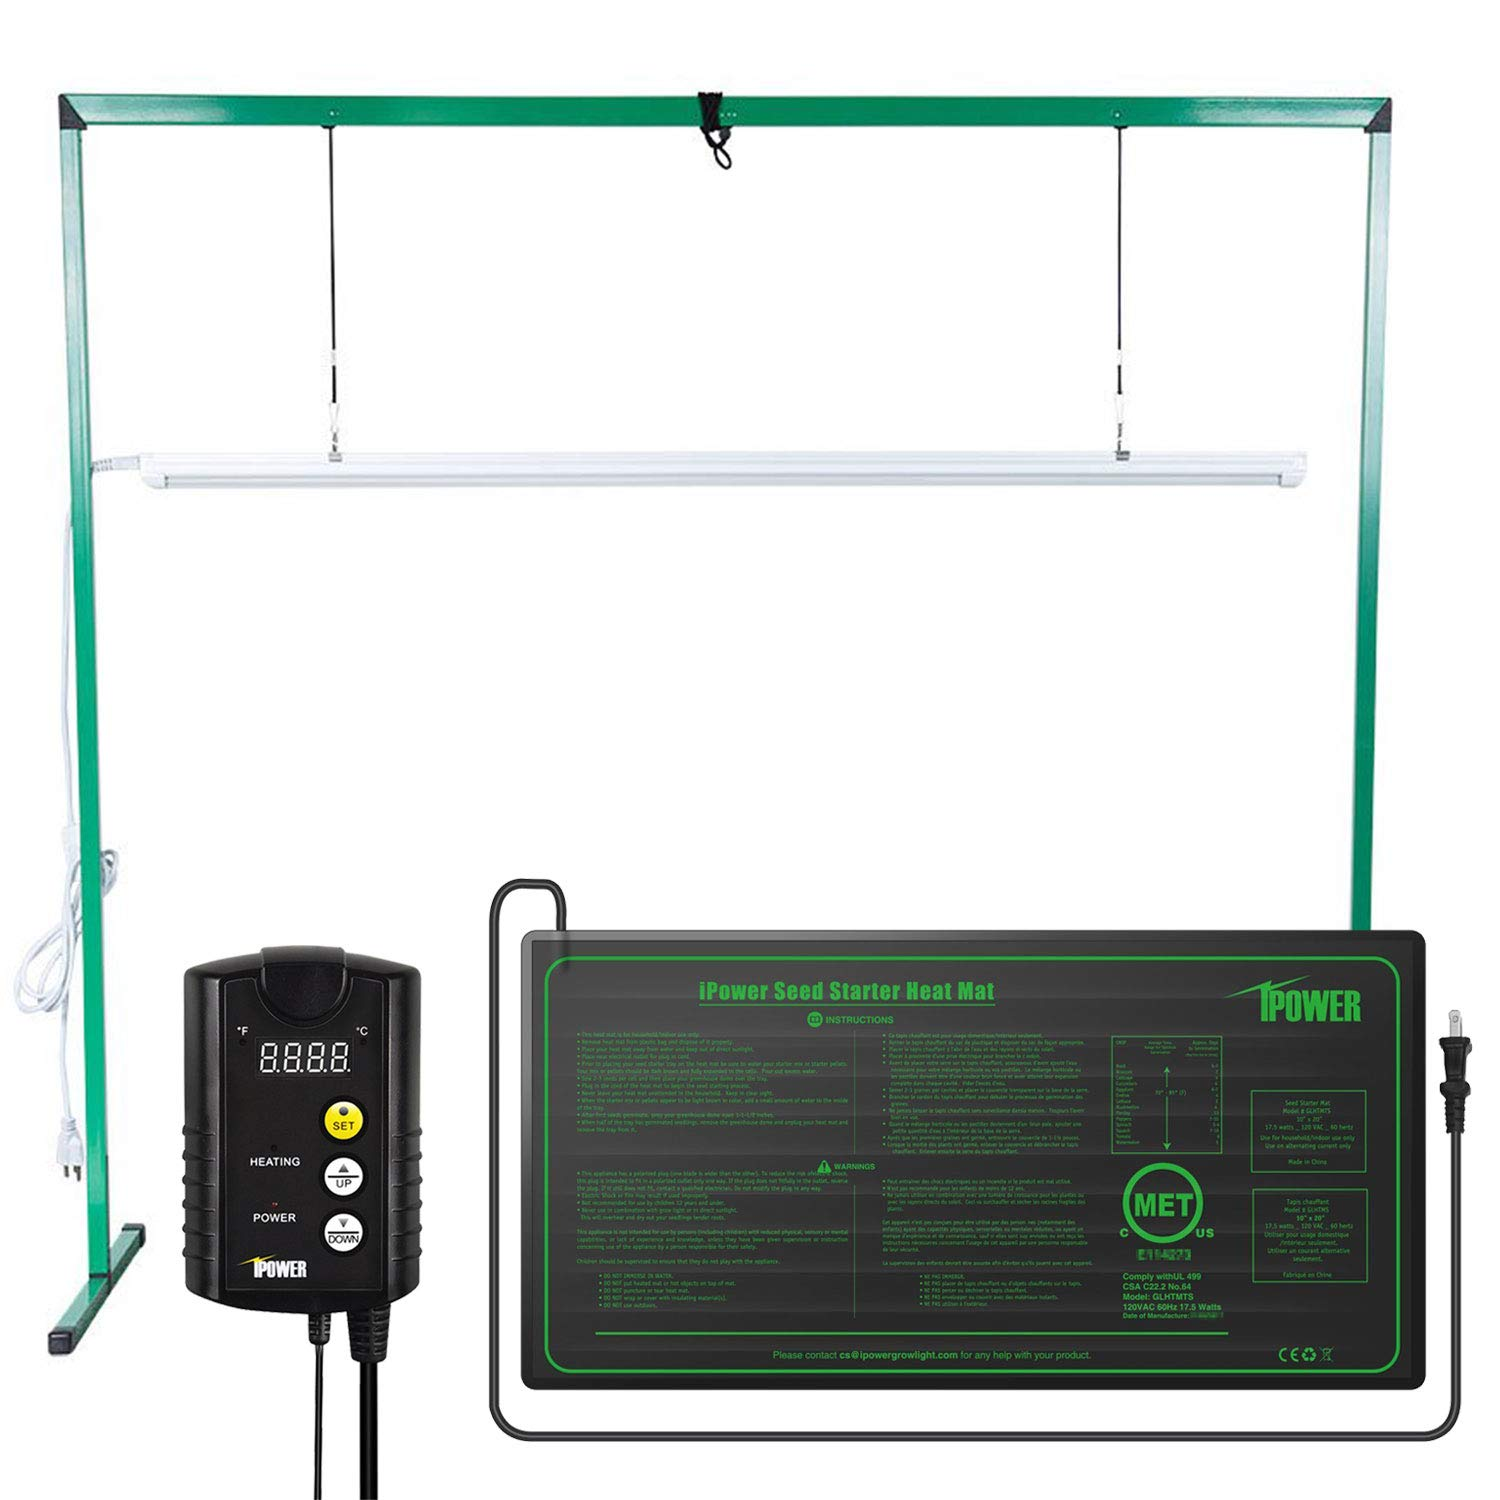 iPower 36W 4 Feet LED Fluorescent Grow Light Stand Rack 6400k and 10 x 20.5 Seedling Heat Mat and 40-108 Degrees Fahrenheit Digital Heat Mat Thermostat Controller Combo Set for Seed Germination